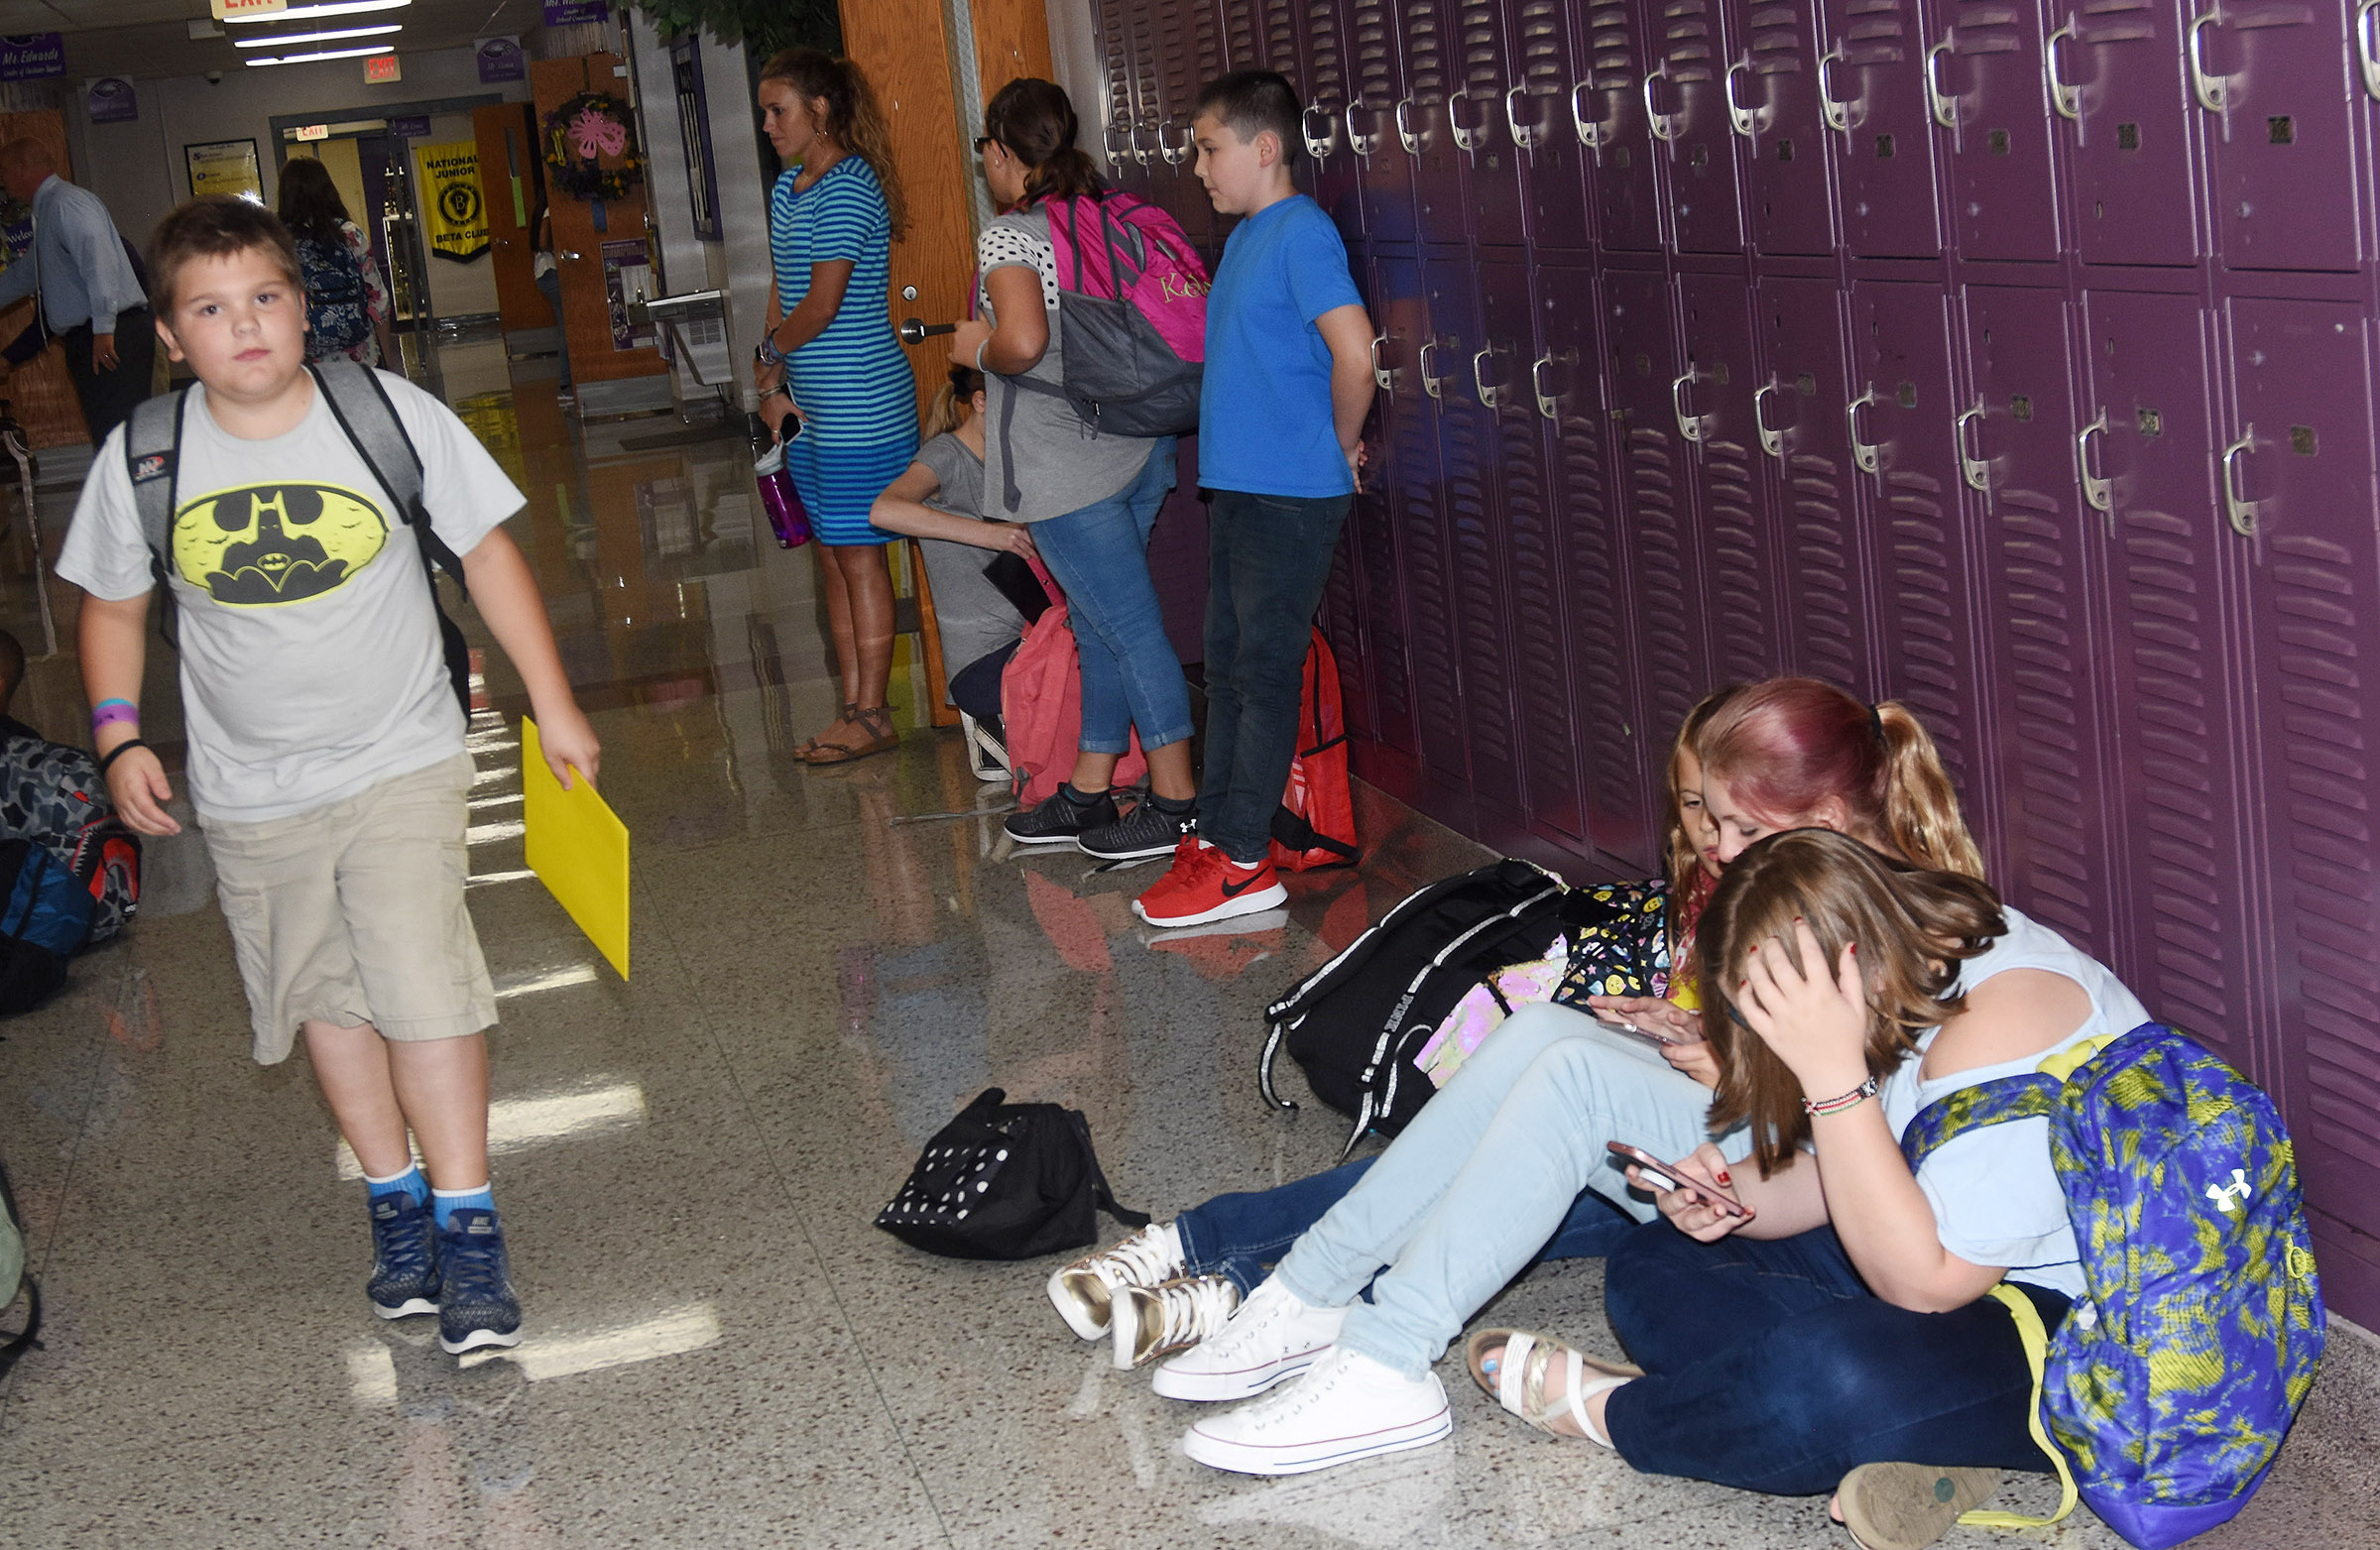 Campbellsville Middle School sixth-grader Logan England walks down the hallway as he and his classmates prepare to go home.